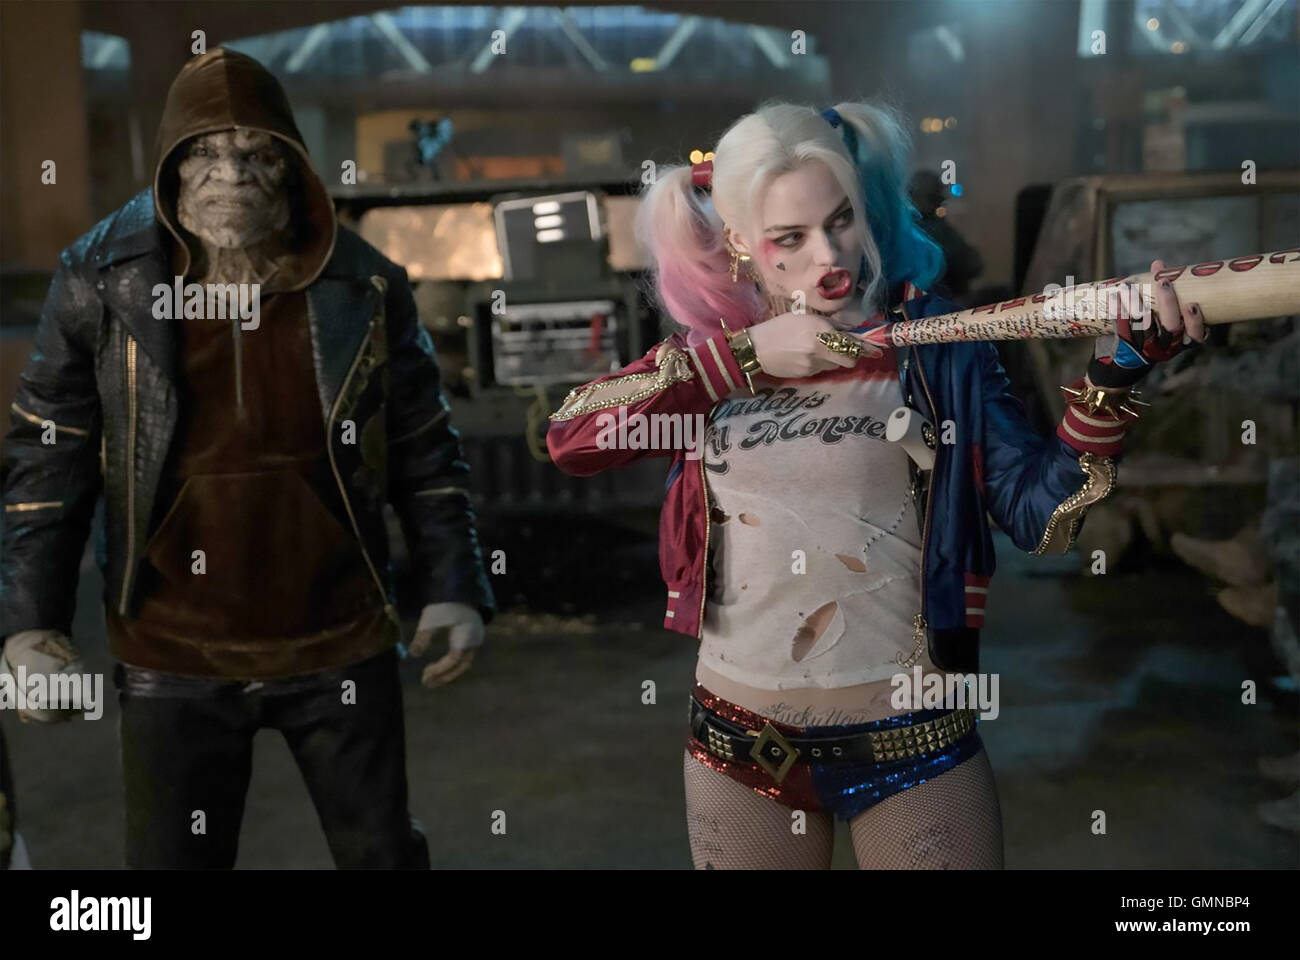 SUICIDE SQUAD 2016 Atlas Entertainment/DC Comics film with Margot Robbie and Adewale Akinnuoye-Agbaje - Stock Image